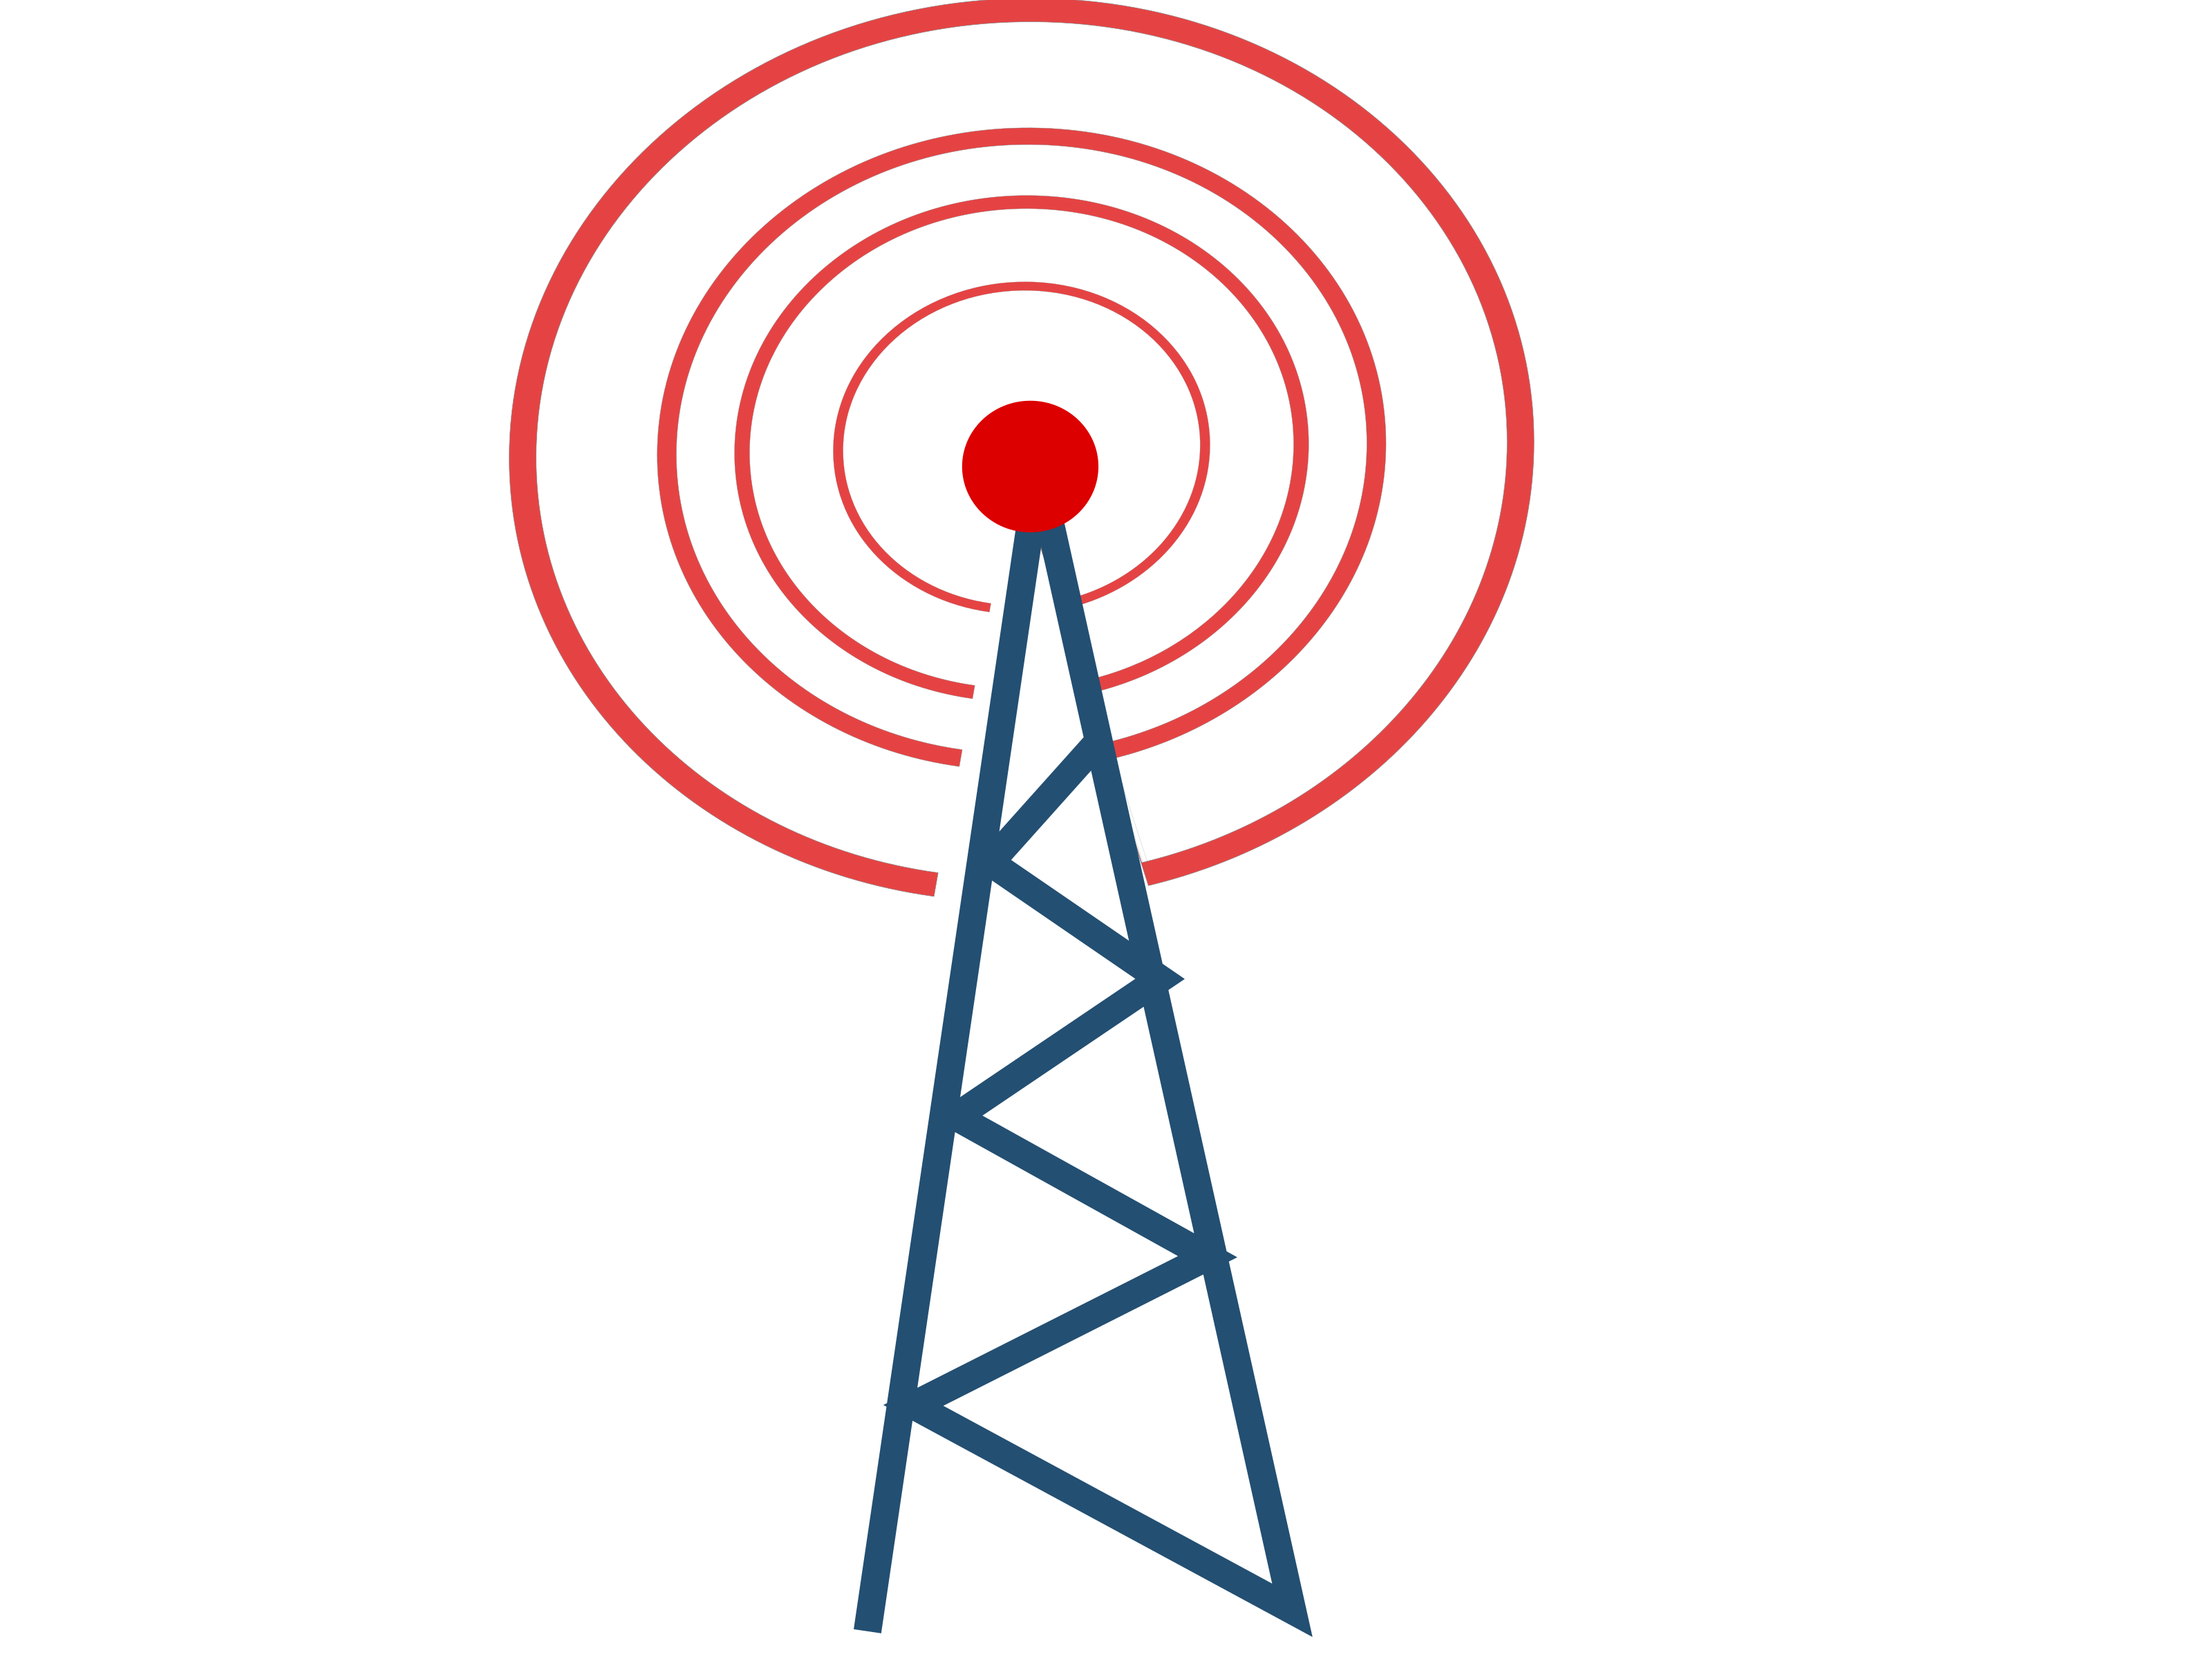 3200x2400 Towers Clipart Network Tower